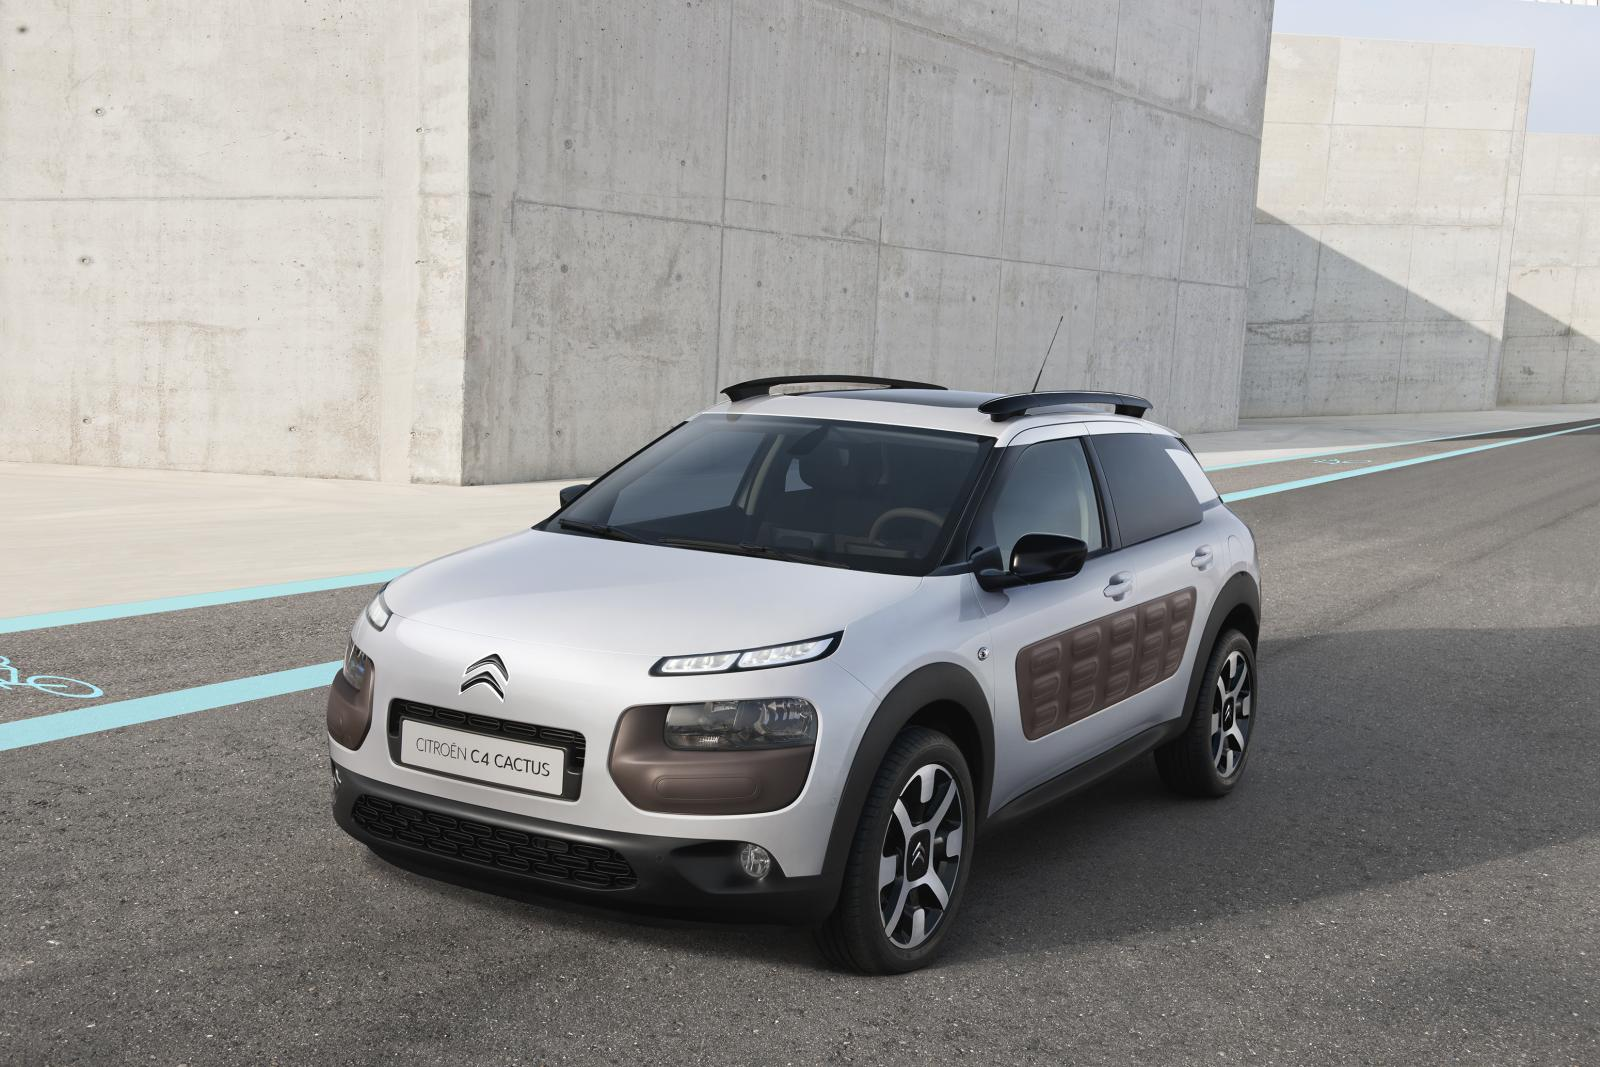 C4 Cactus Shine Edition 2014 ¾ forfra